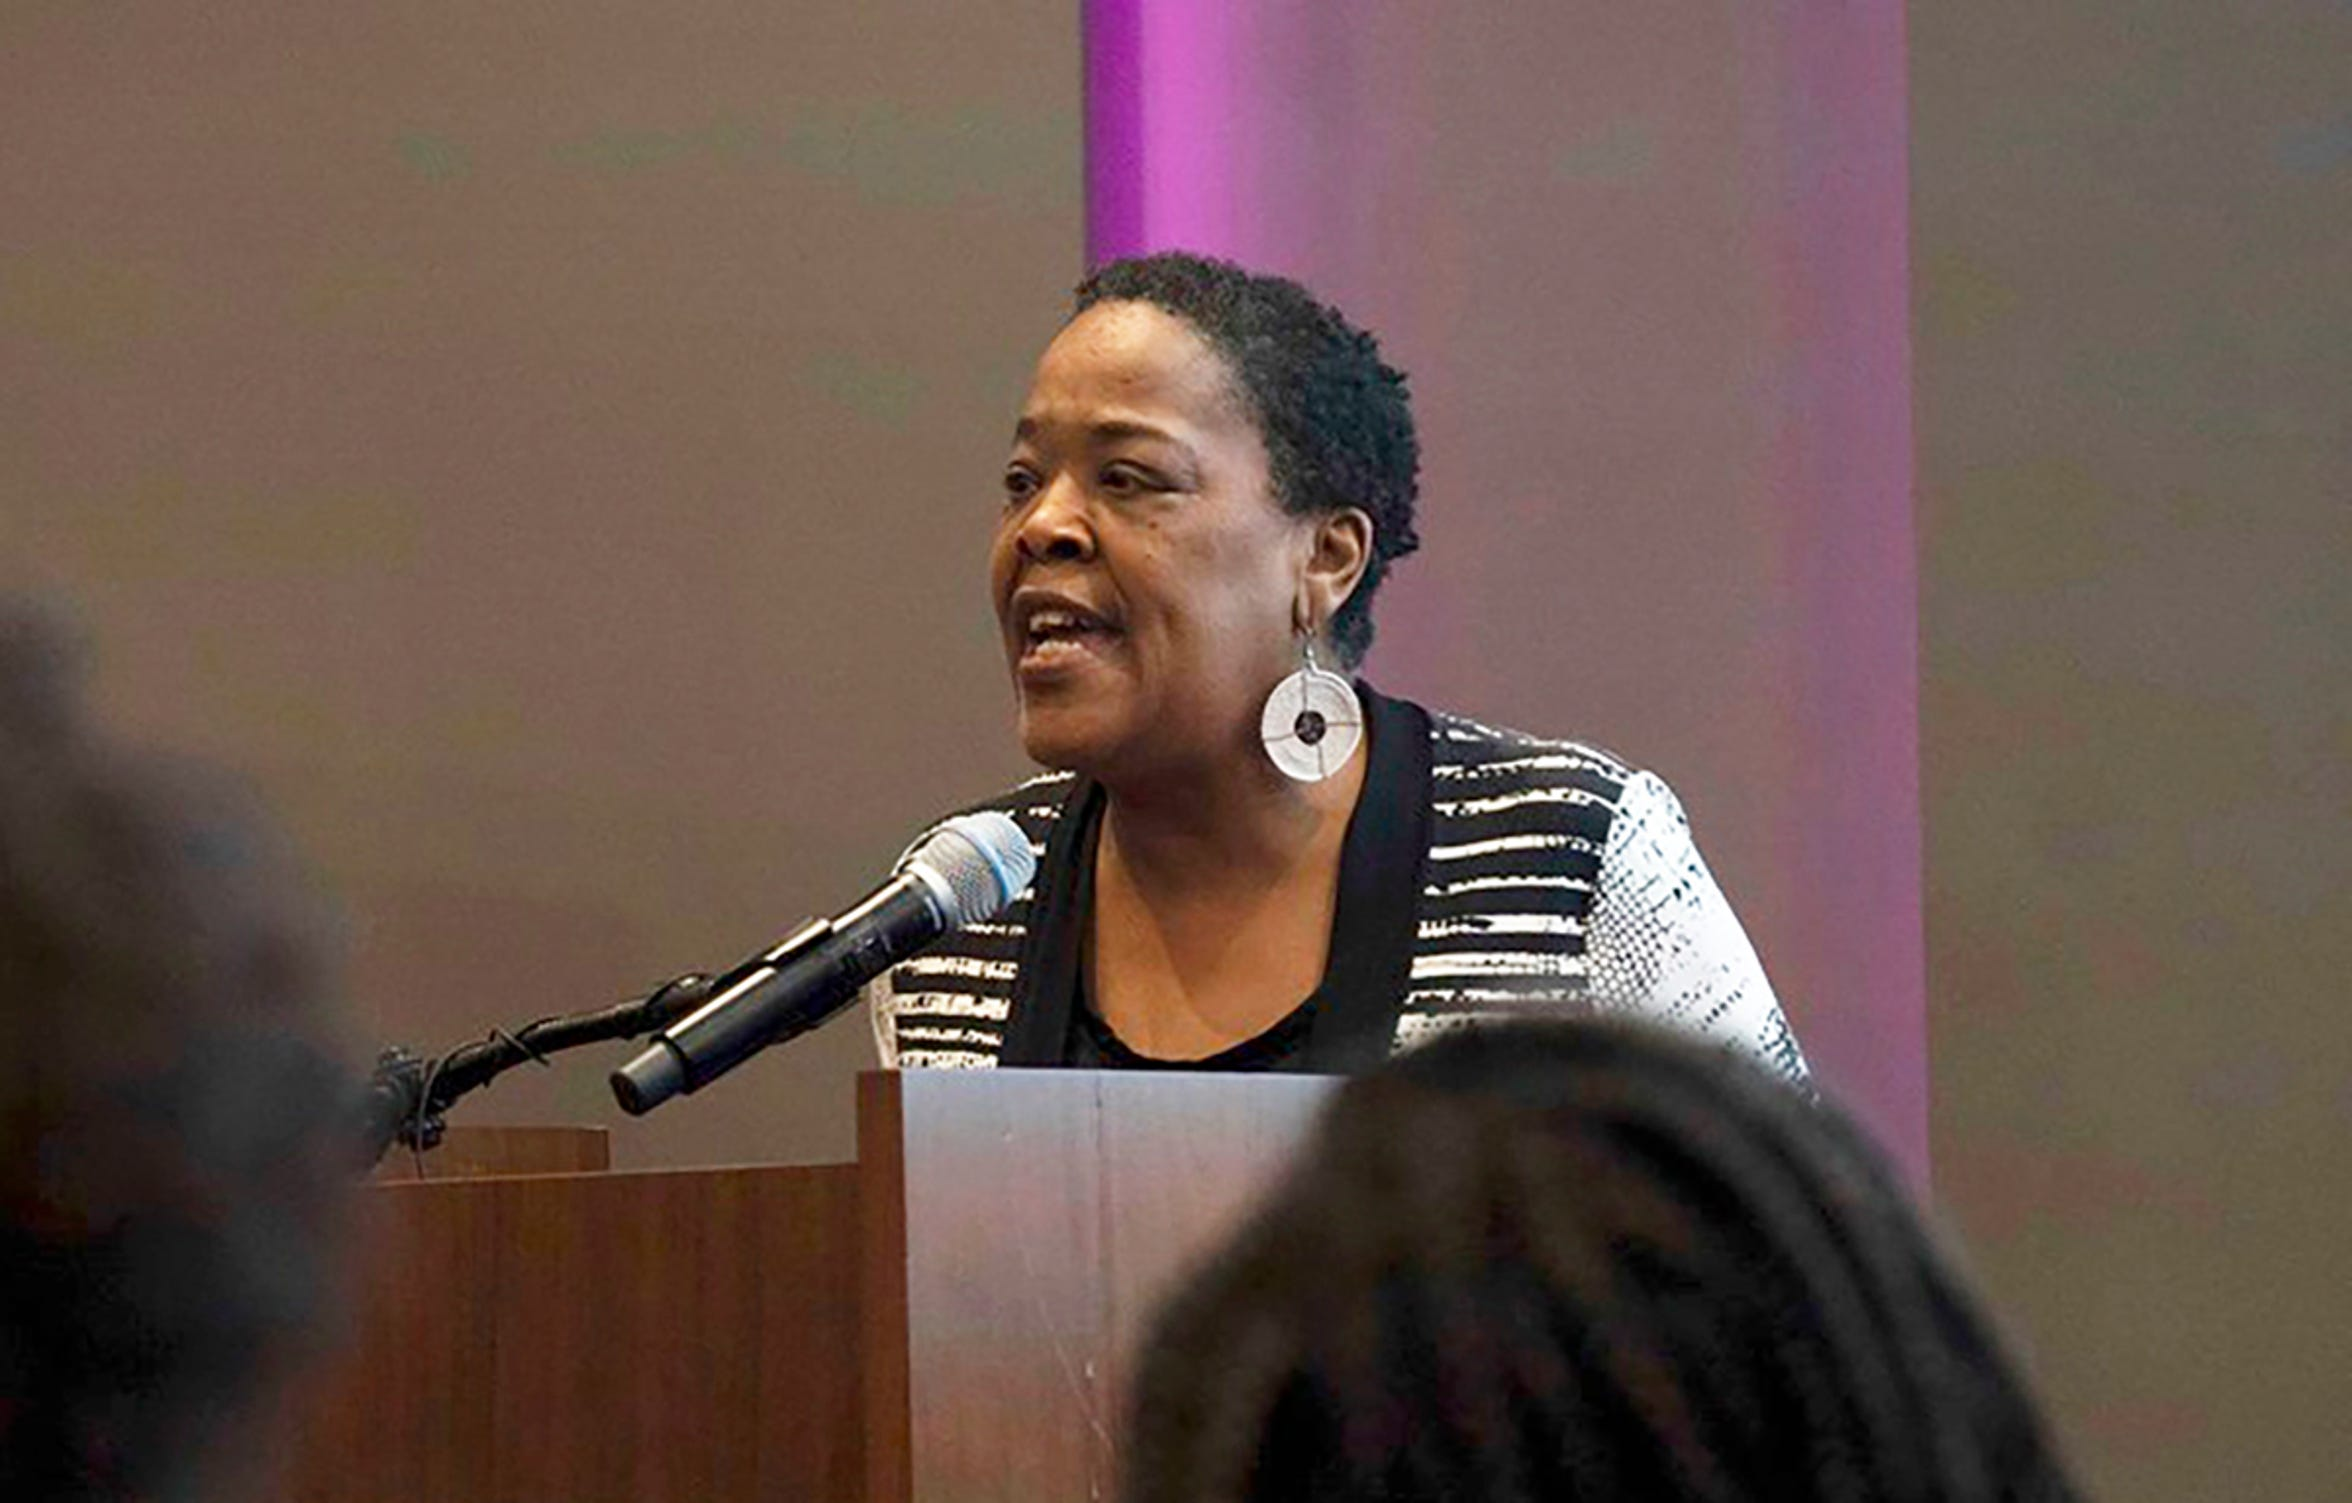 In this June 20, 2019 photo provided by Meredith Williams, Jaribu Hill speaks at the Mississippi Civil Rights Museum in Jackson, Miss., during a reception honoring the life of civil rights activist Unita Blackwell.